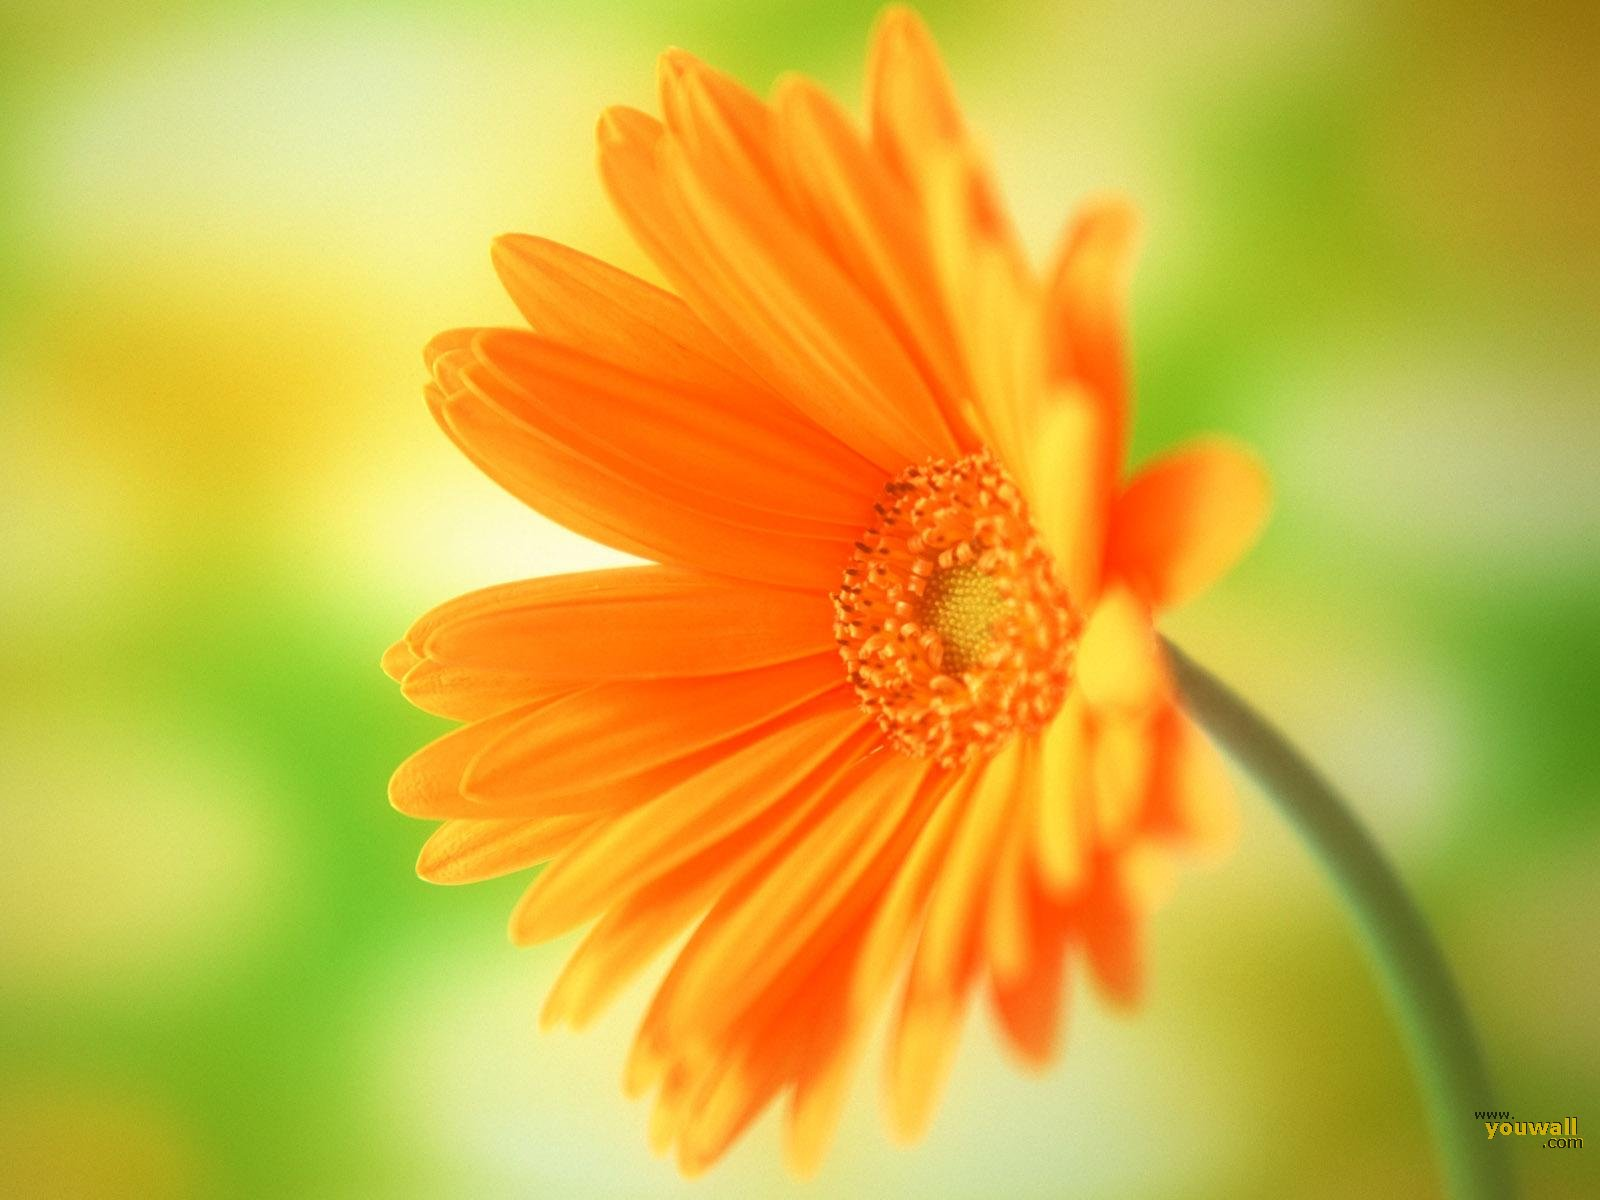 Orange Flower Wallpaper